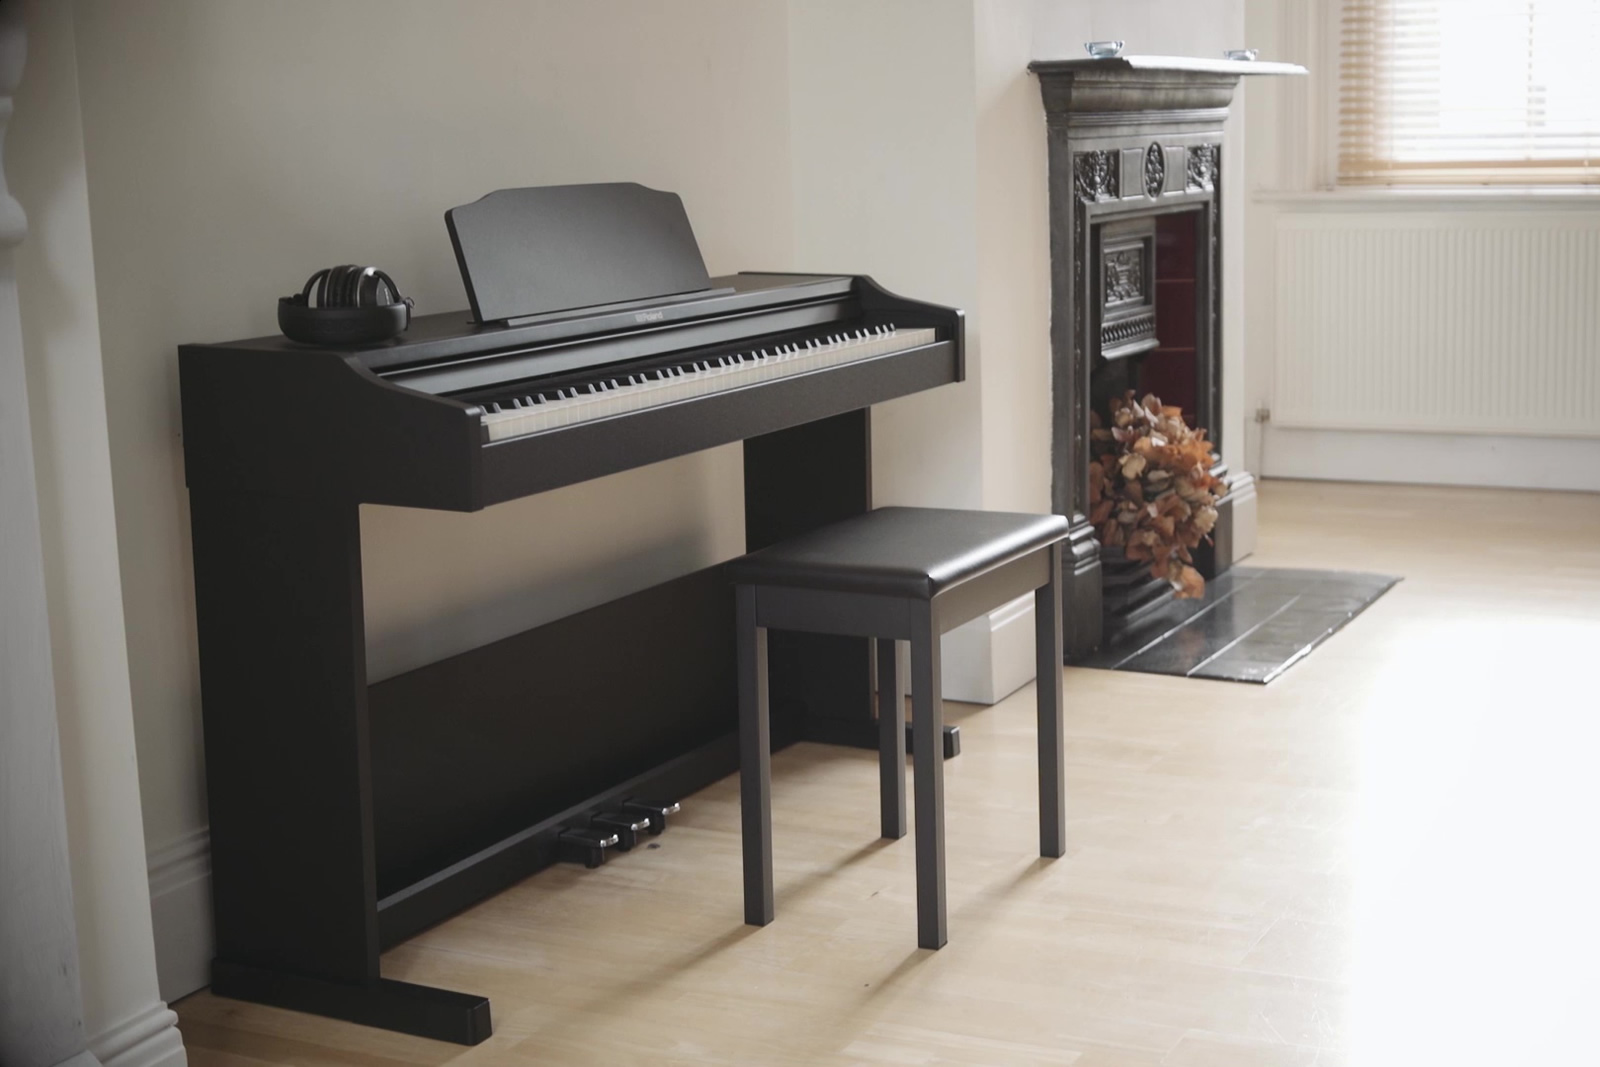 Digital Piano Roland Rp102 : roland rp102 digital piano ~ Russianpoet.info Haus und Dekorationen